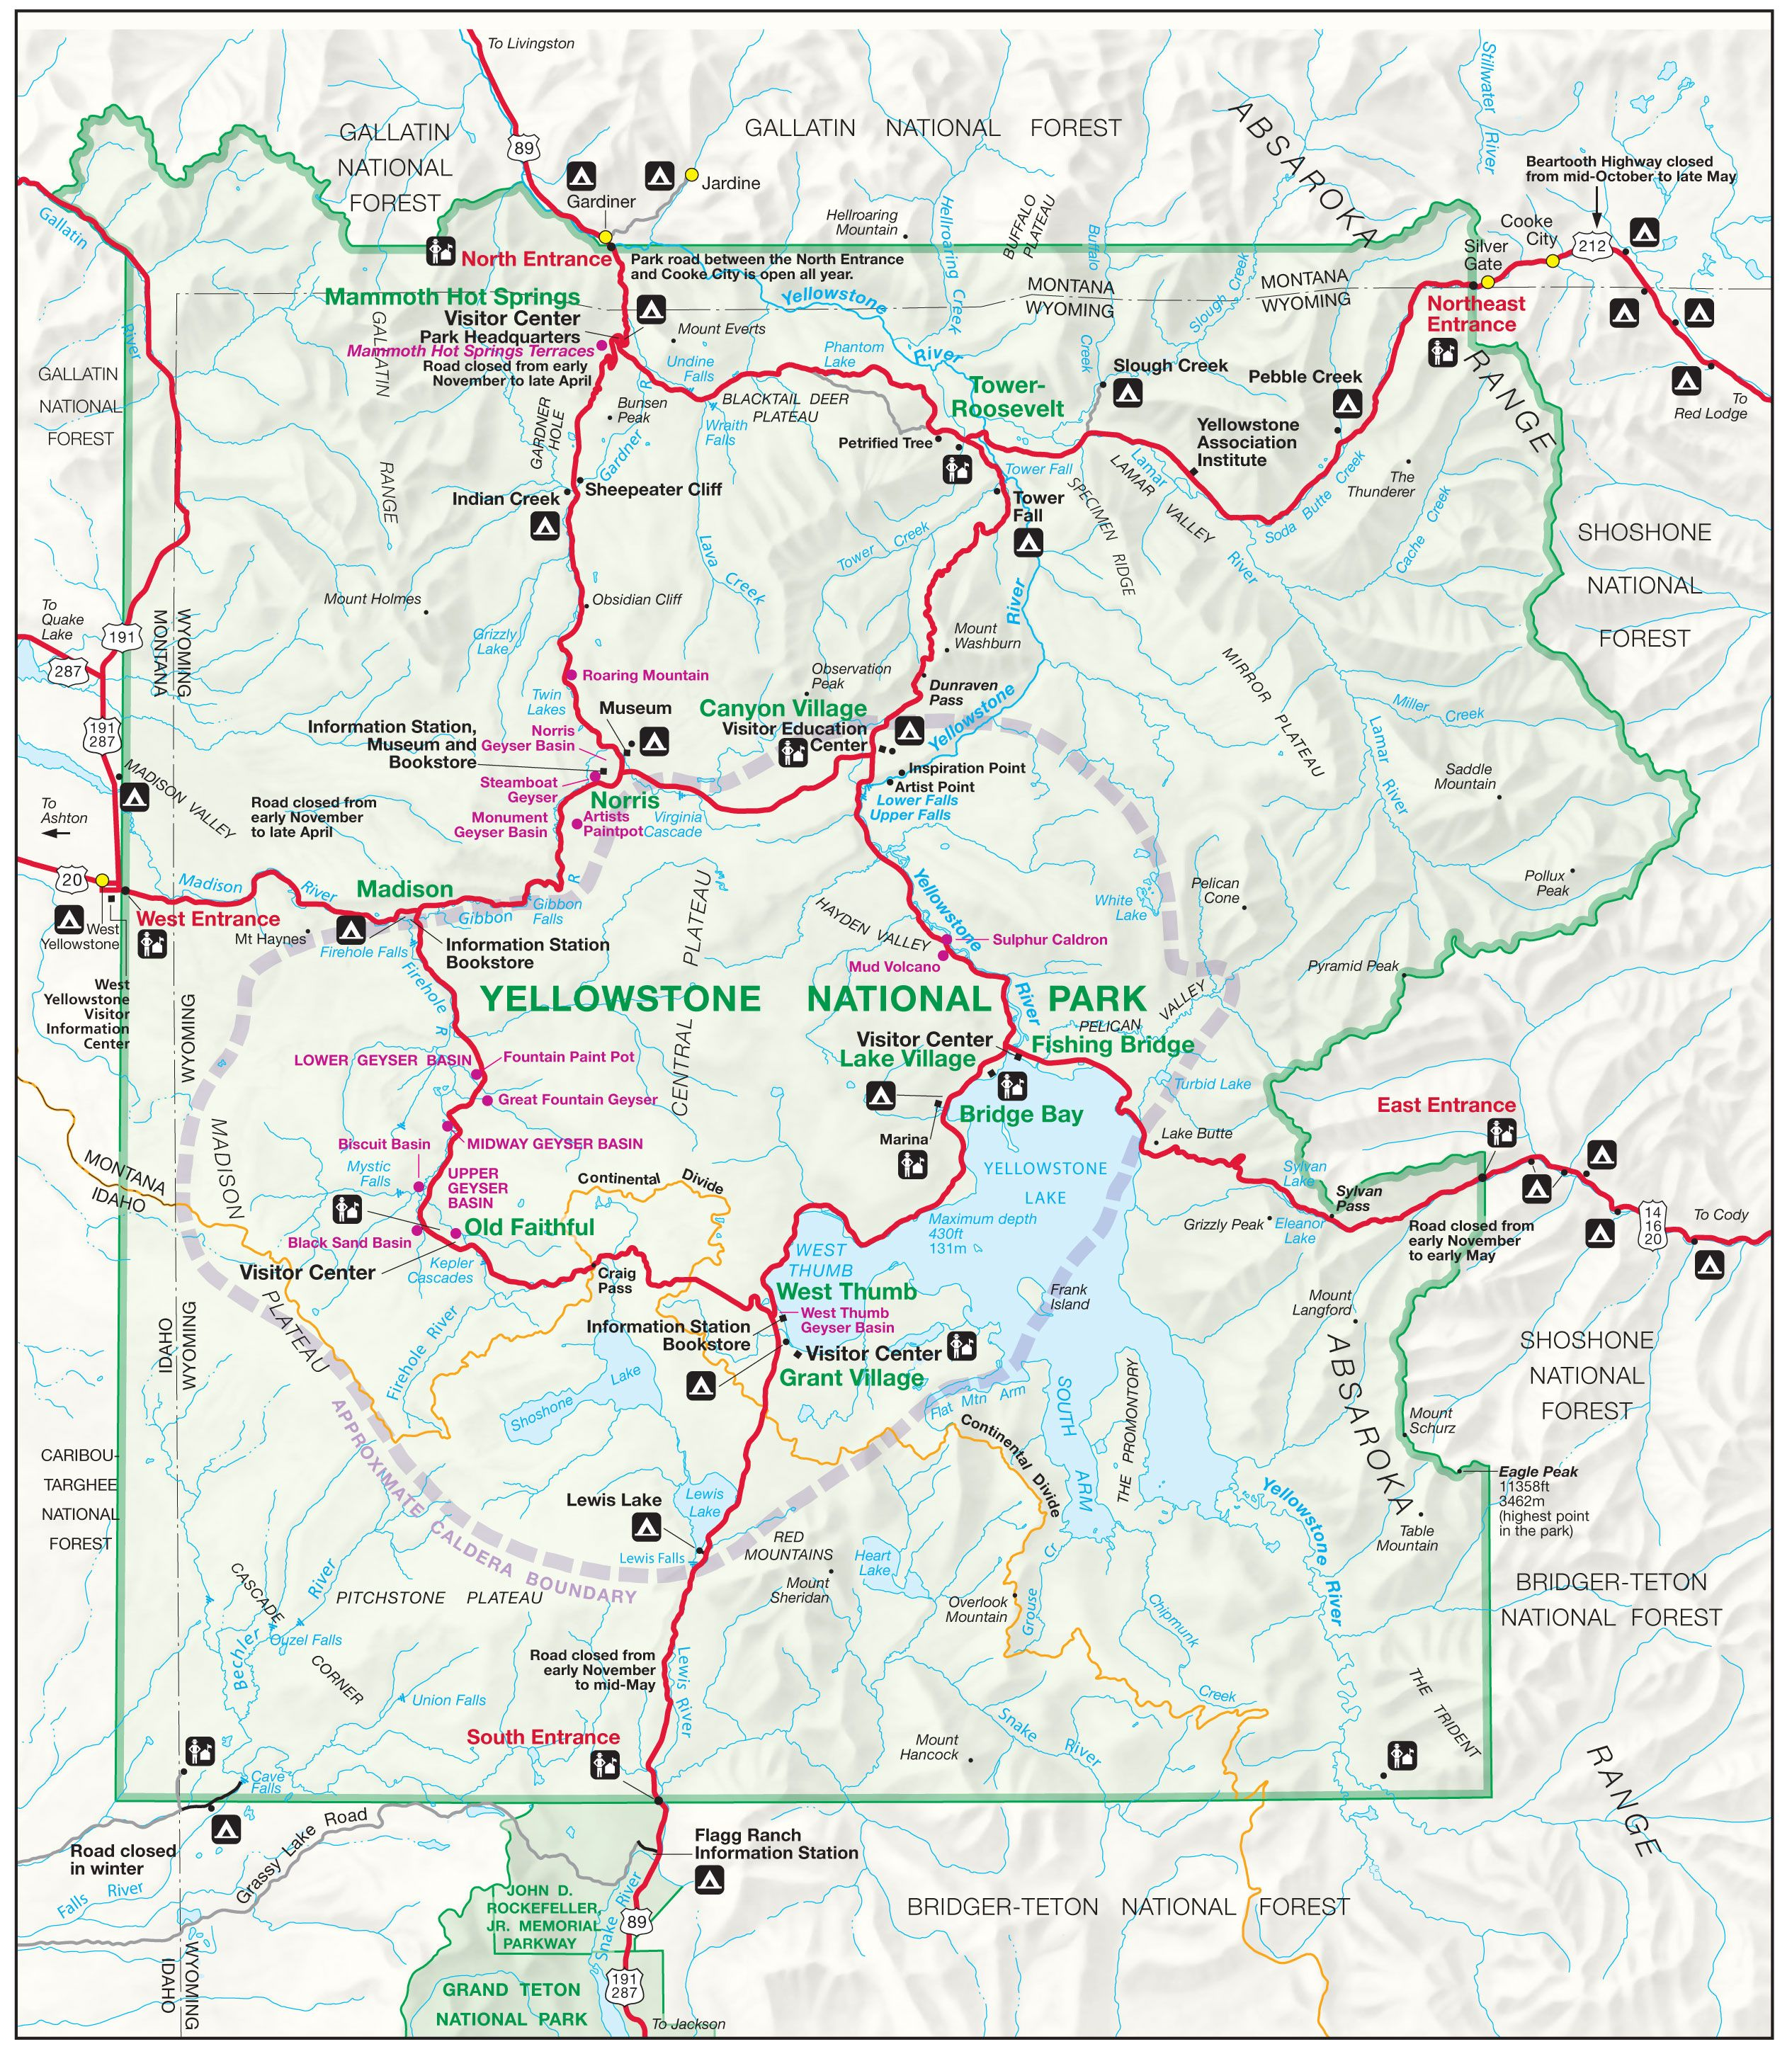 yellowstone national park map: the northernmost road runs through ...